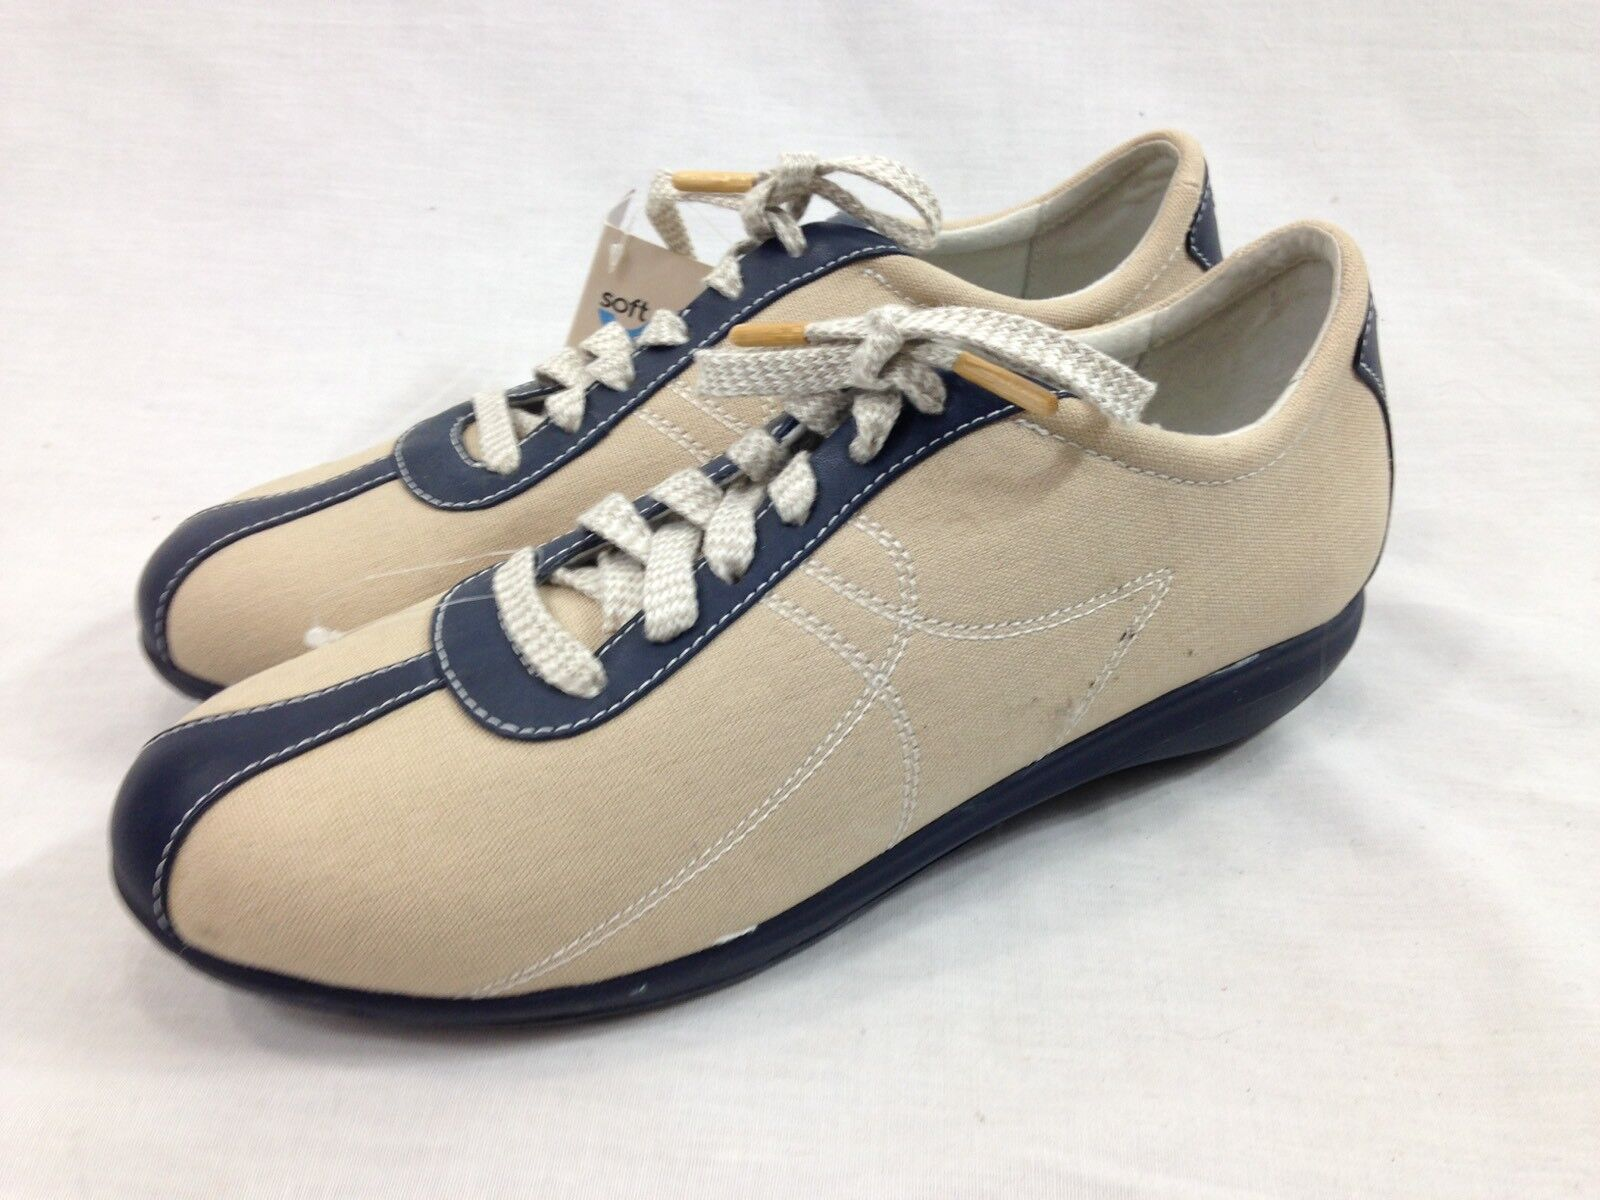 NEW Softwalk Health Glide Fitness Schuhes Sneakers Damens 11N Beige Tan Navy Lace